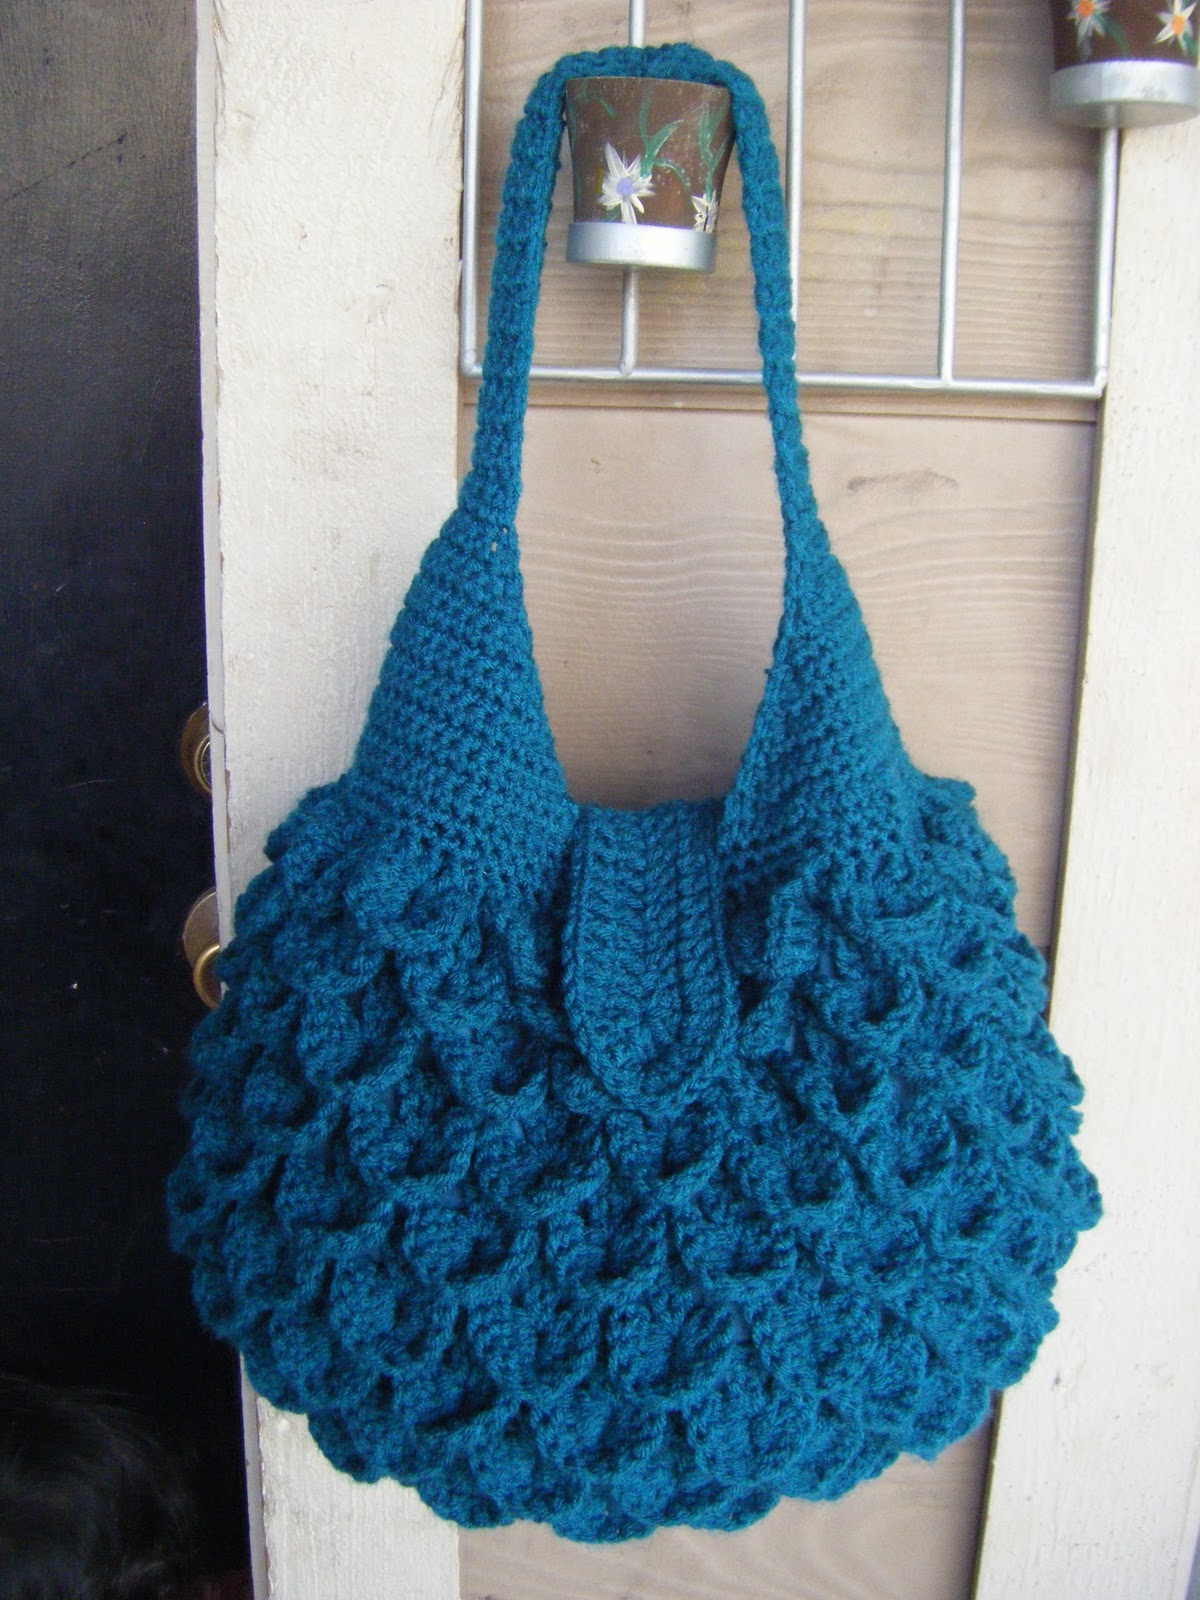 Free Crochet Pattern Bag : Free Thread Crochet Purse Pattern Learn to Crochet